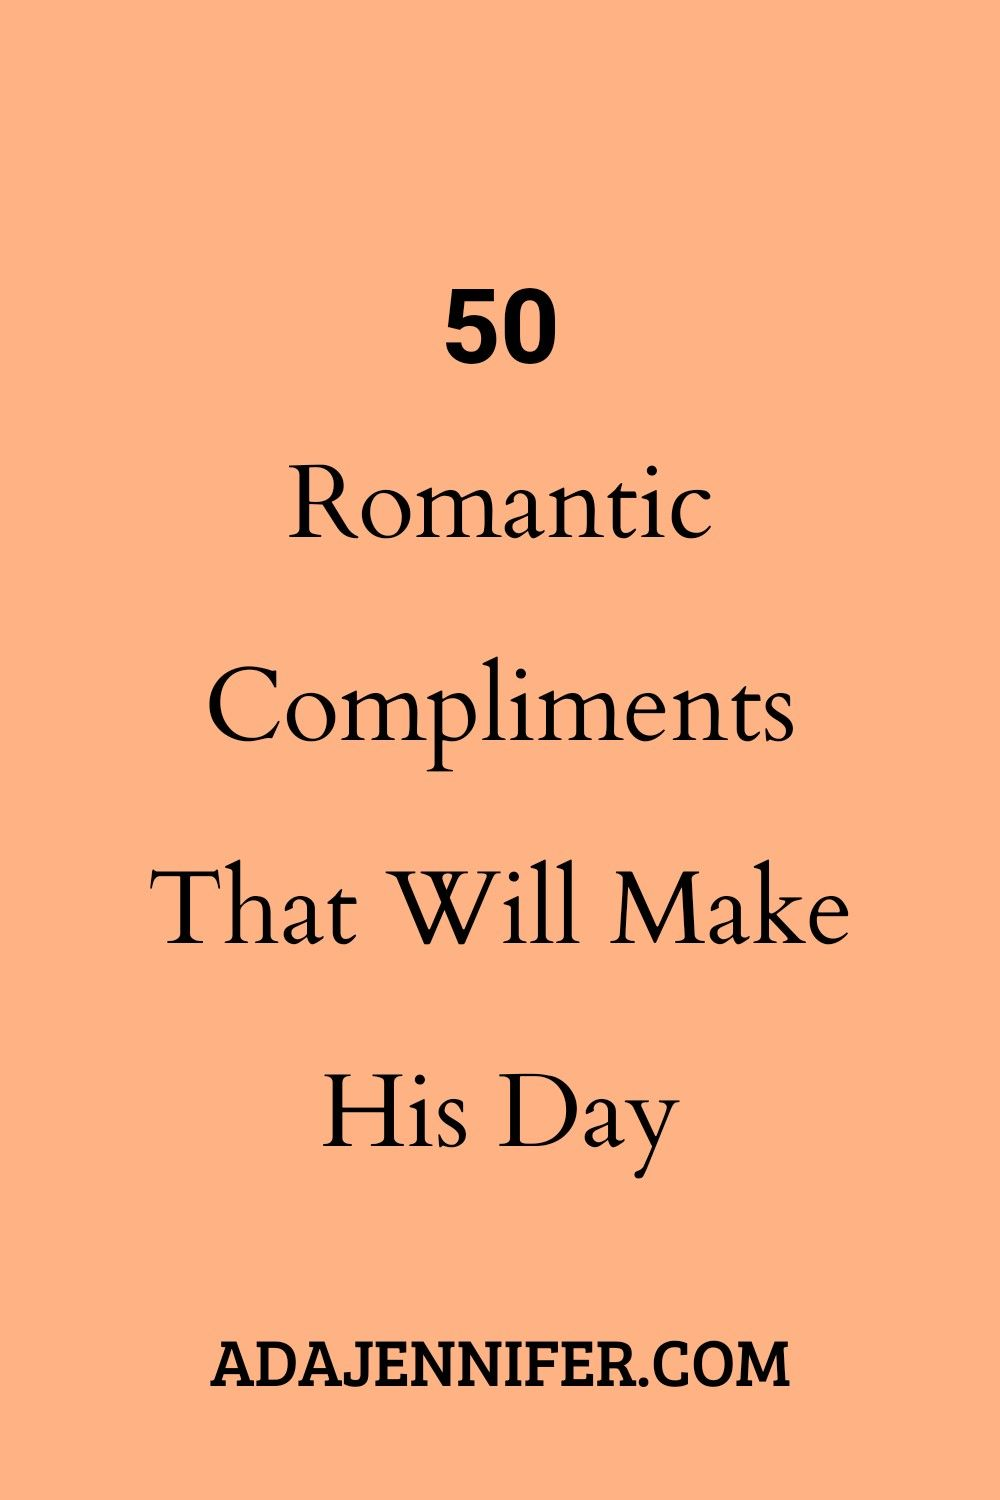 50 Romantic Compliments That Will Make His Day in 2021